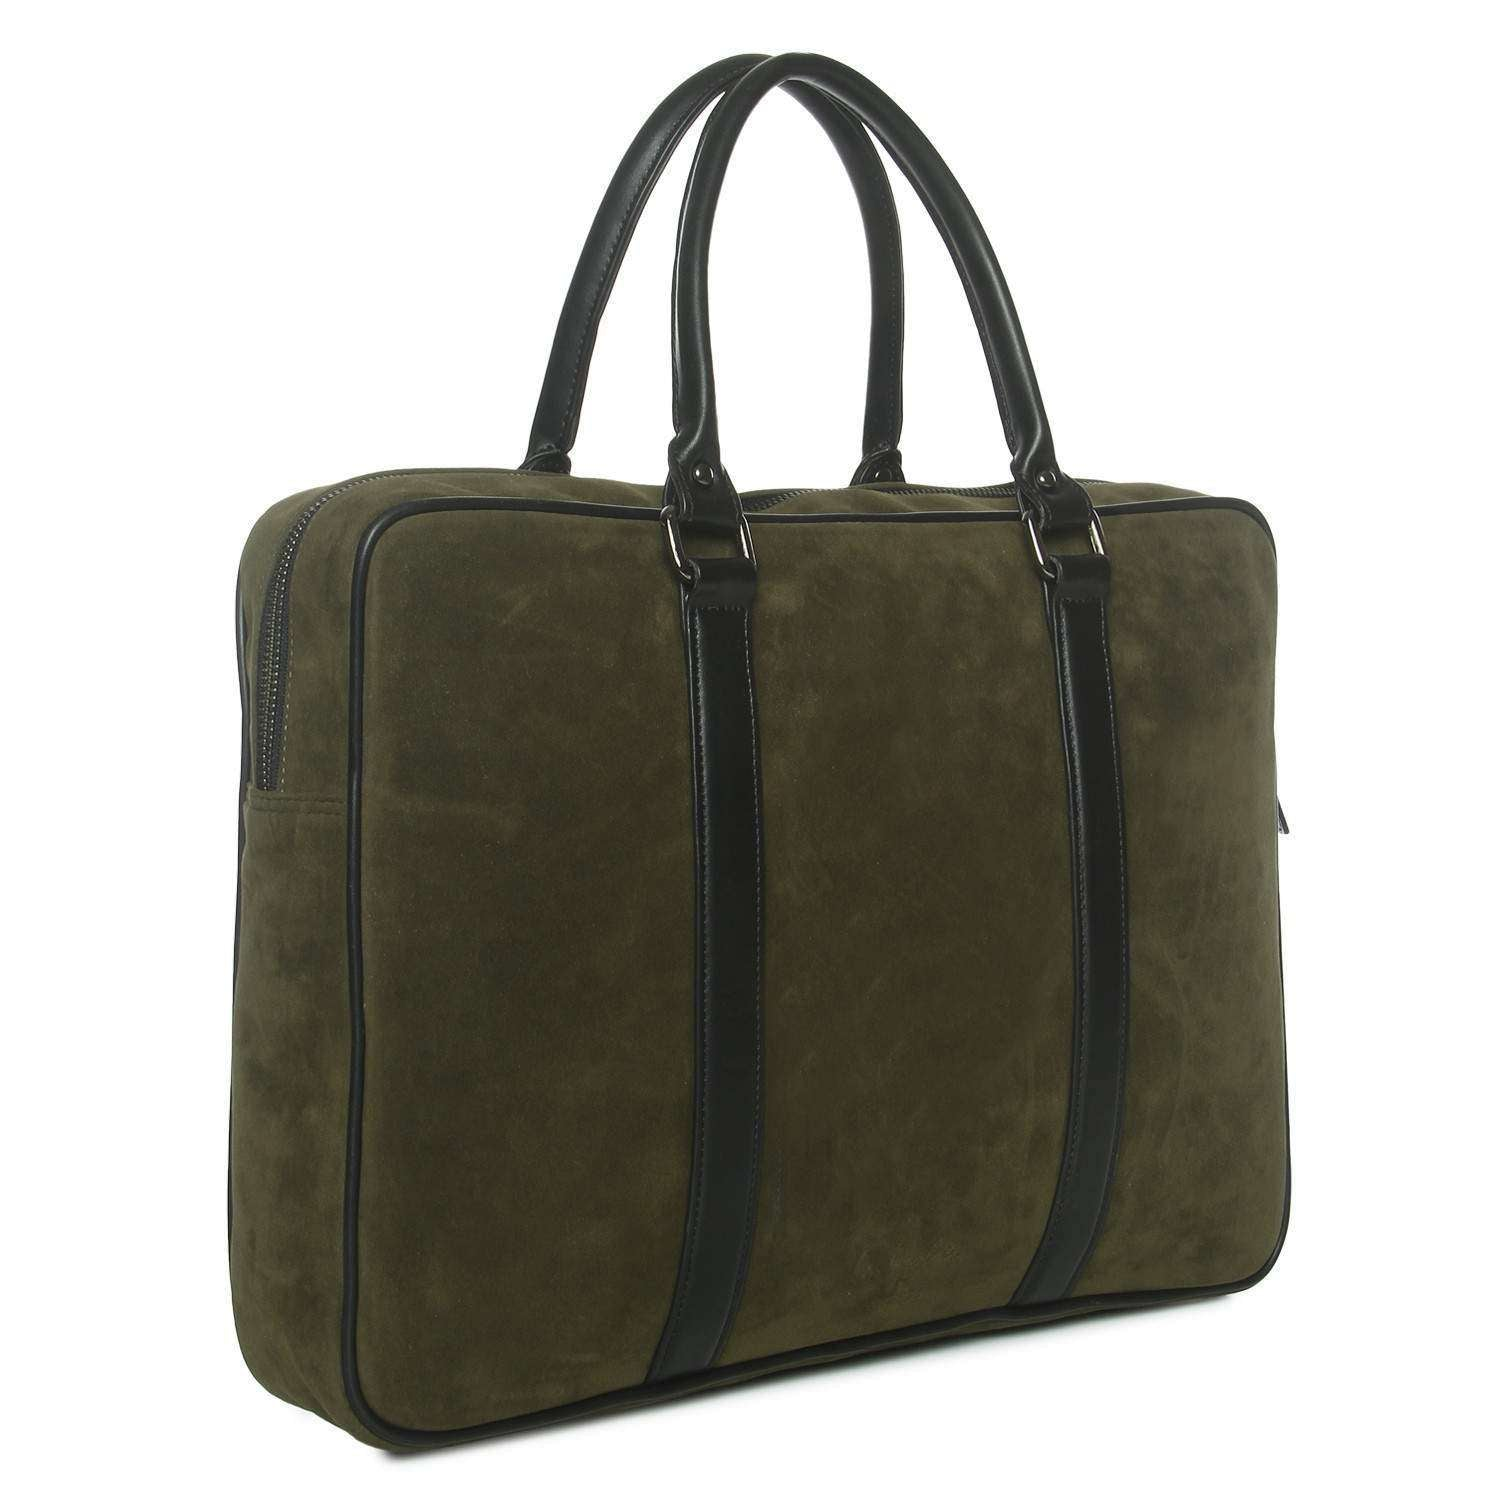 Mr Basher Olive Laptop Messenger Bag